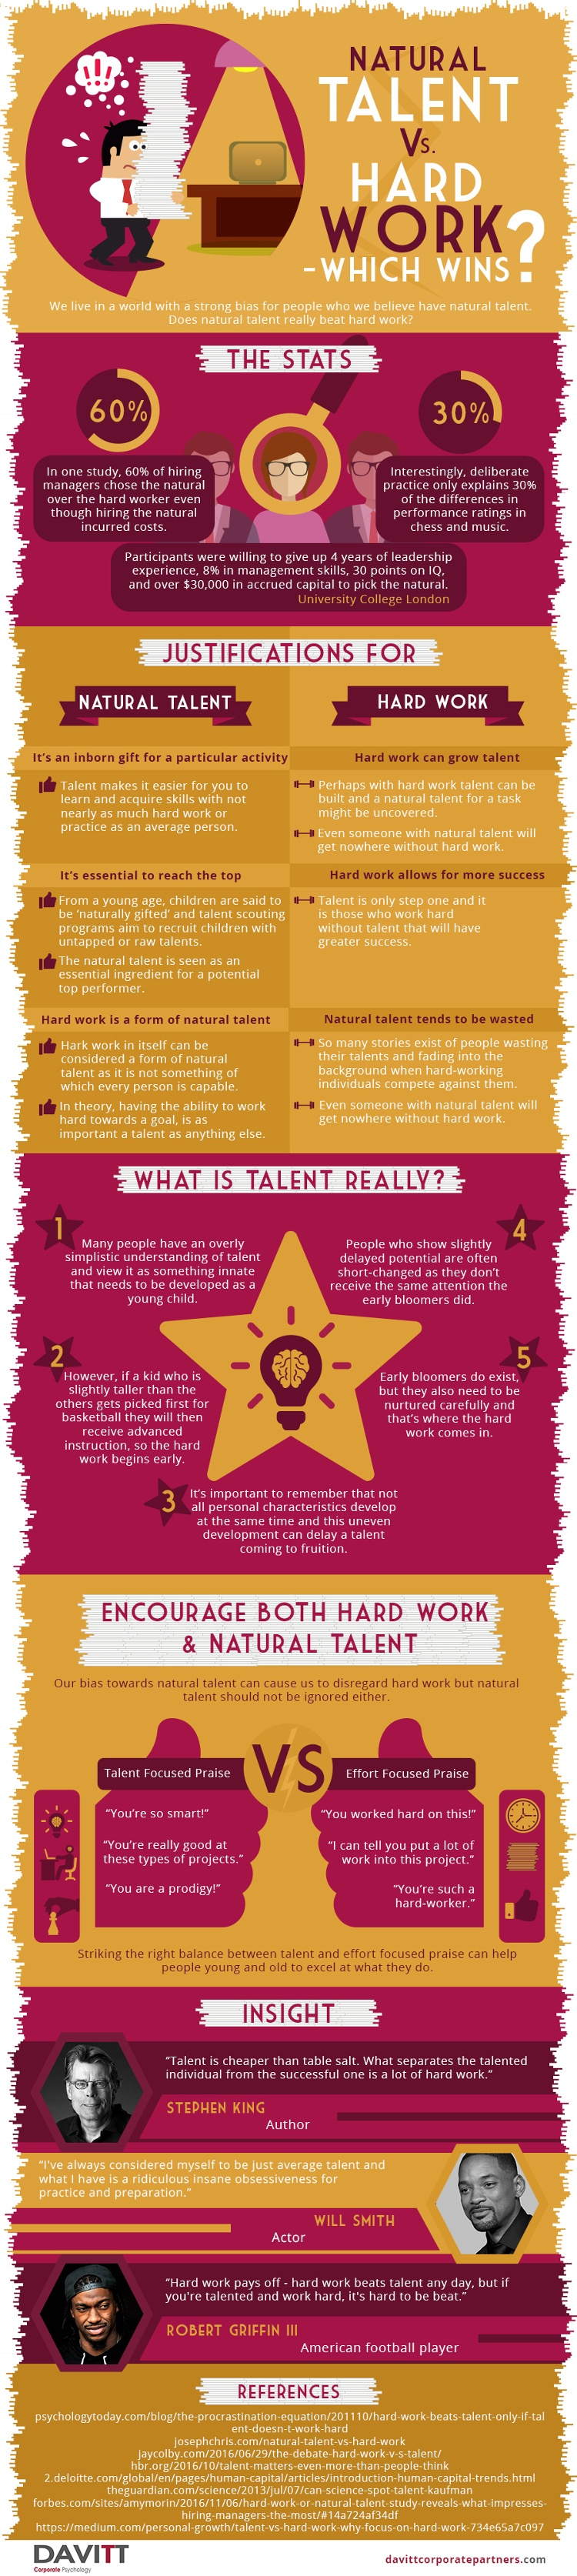 Natural talent vs hard work infographic